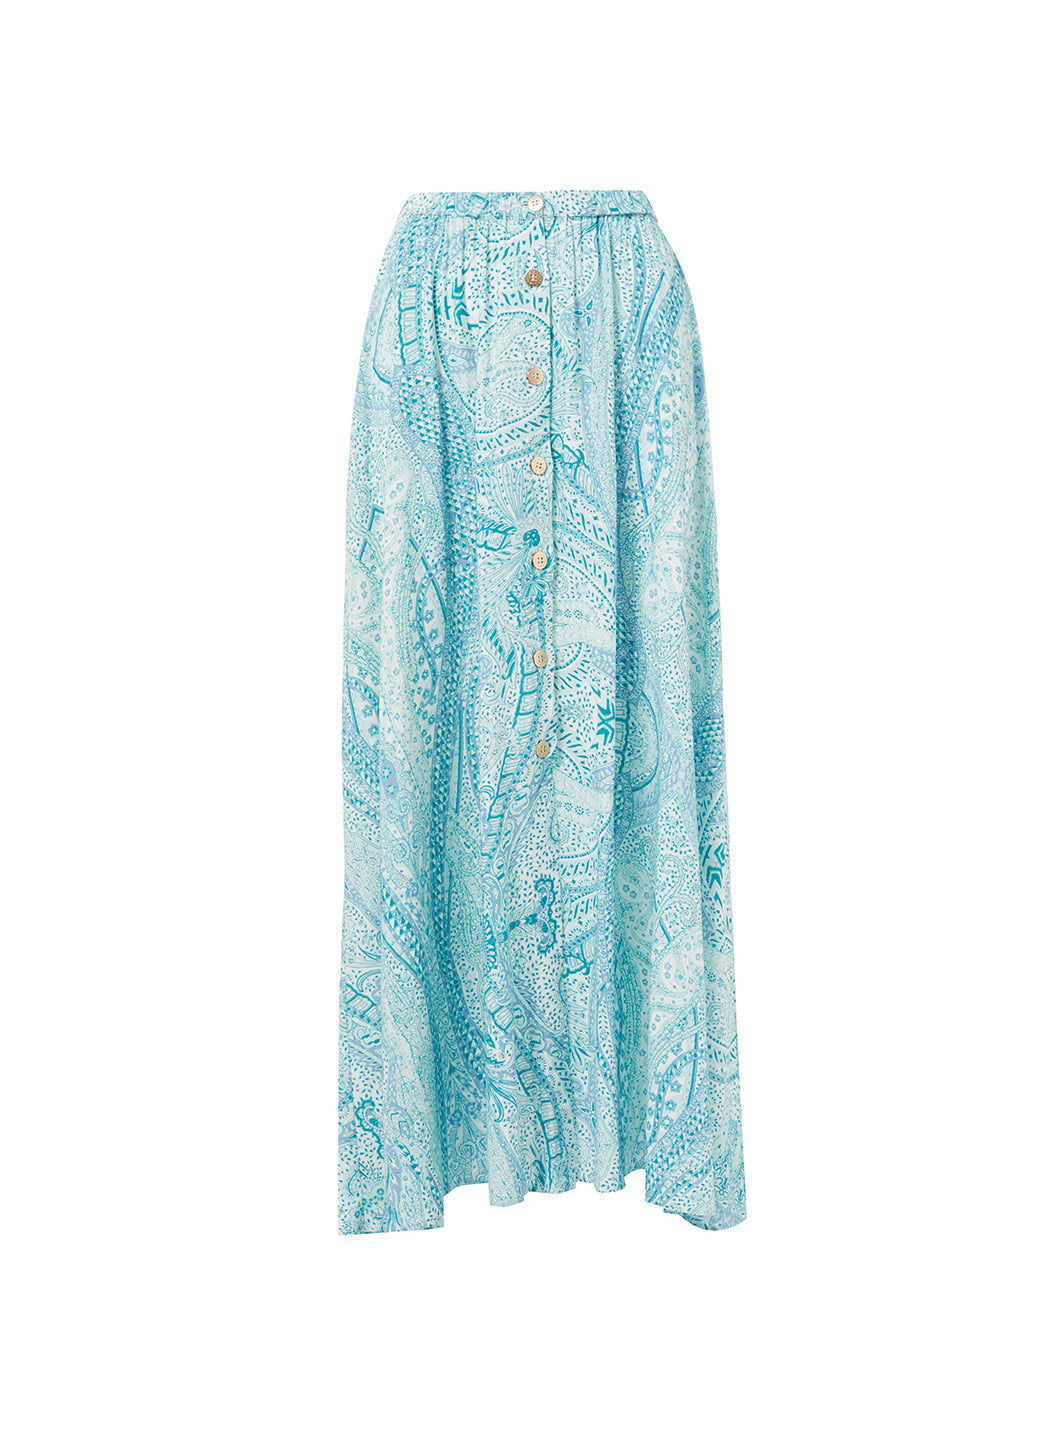 Daisy Paisley Button-Down Maxi Skirt - Melissa Odabash Beachwear